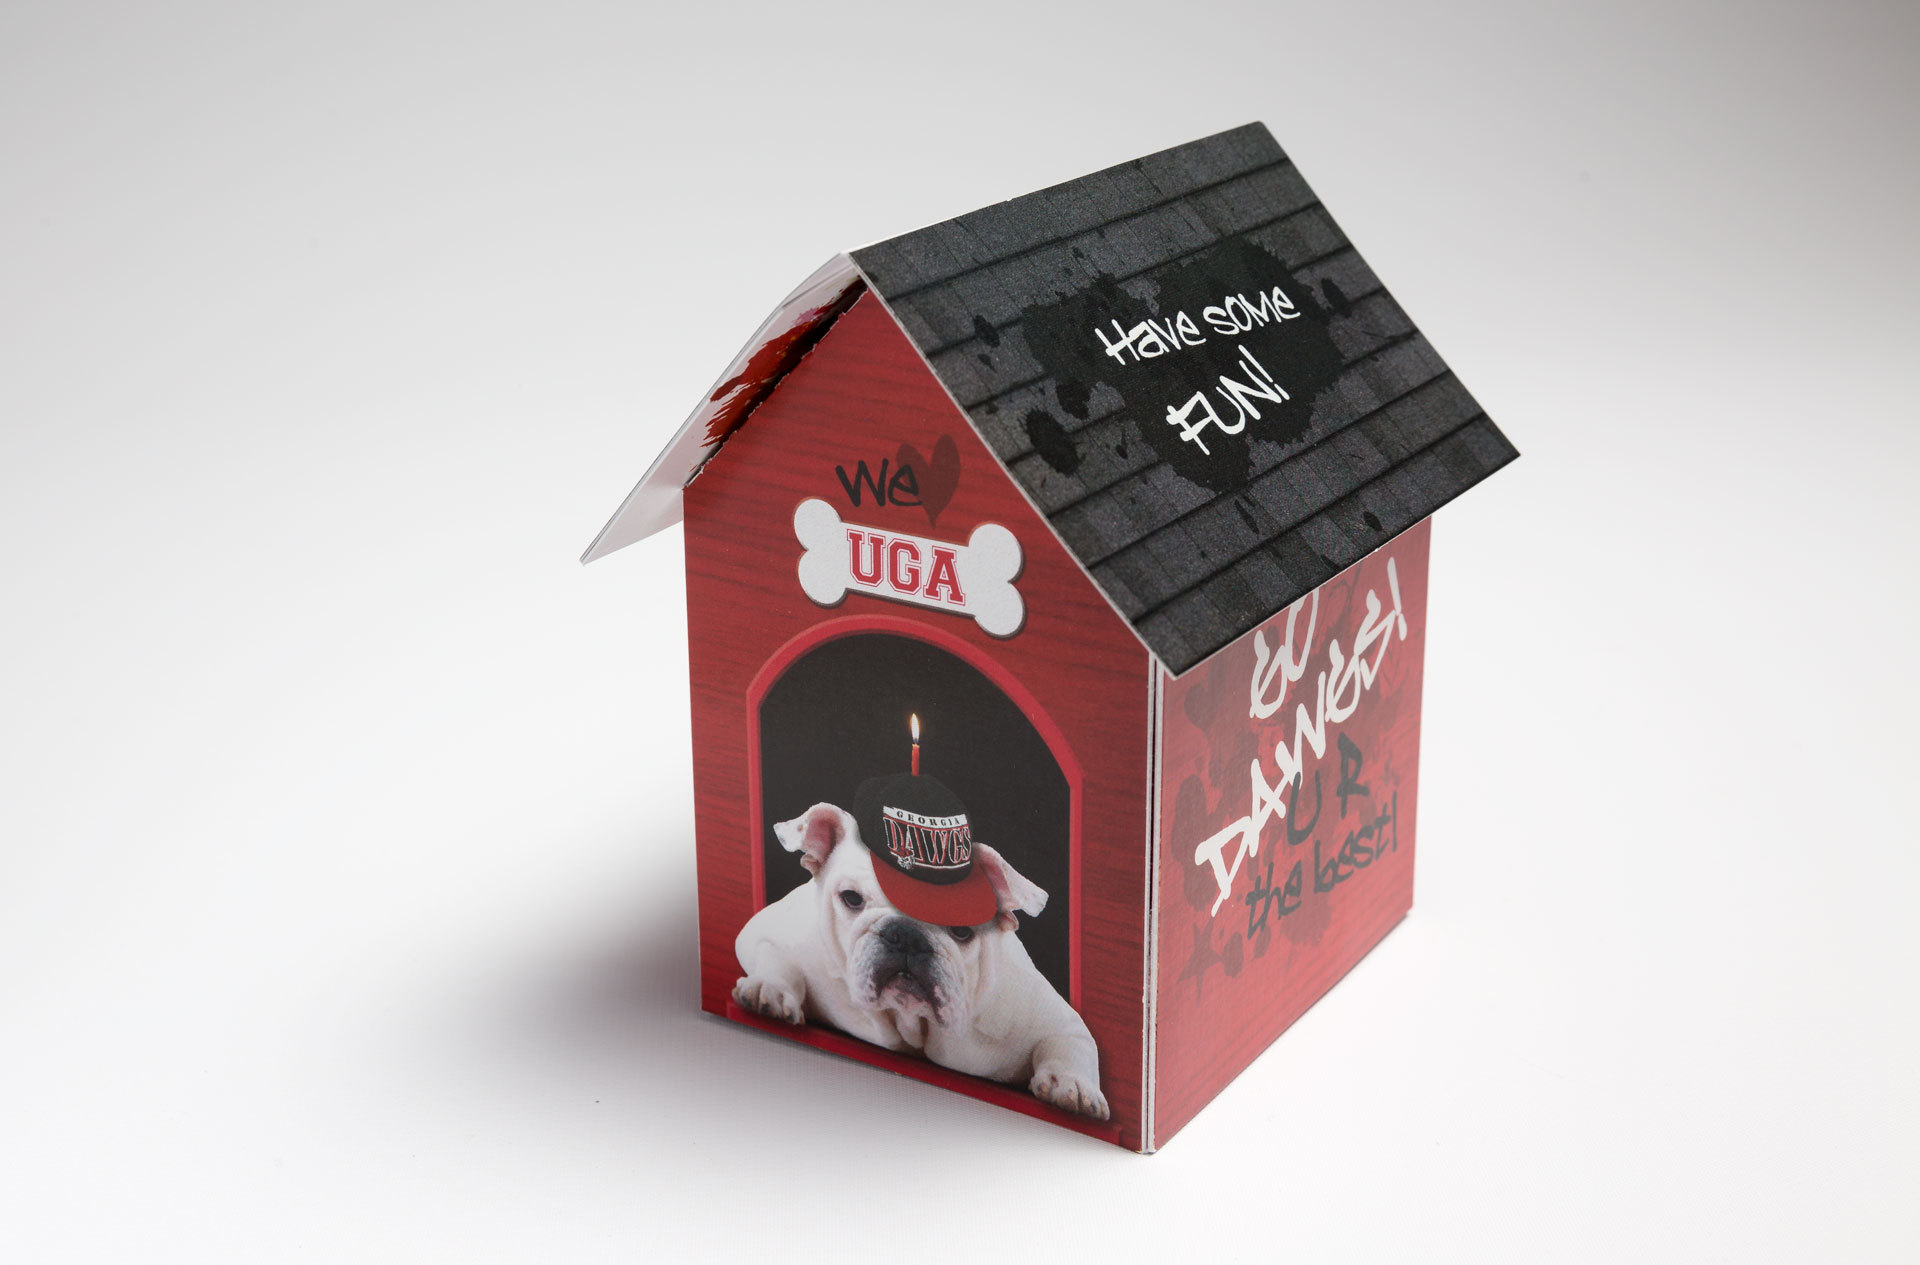 University of Georgia Surprises Top Donors with the Pop Up House with Lift Up Roof